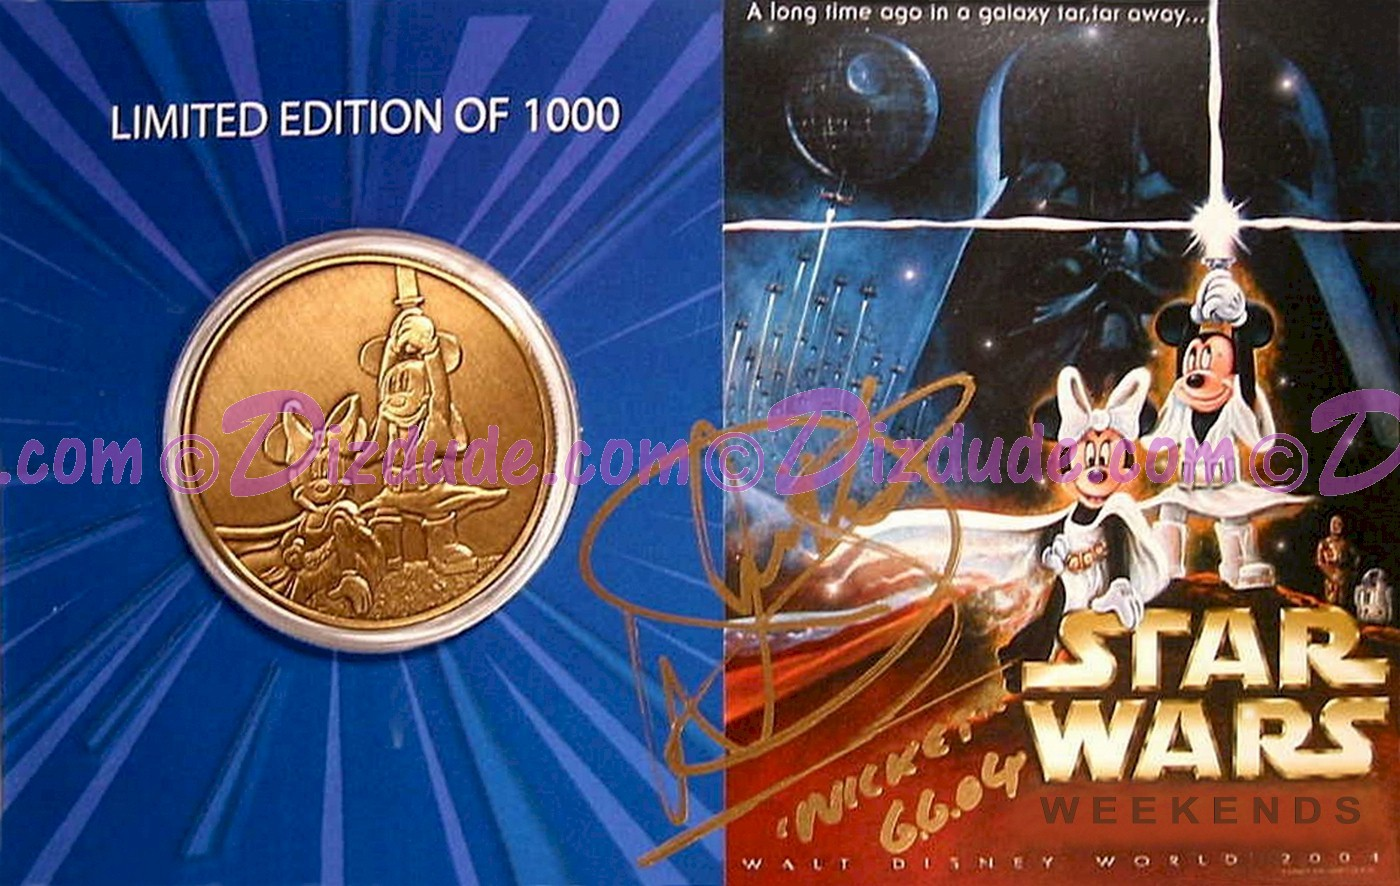 Disney Star Wars Weekends 2004 Bronze Coin LE1000 Signed by Warwick Davis (Wicket) and Disney artist Randy Noble